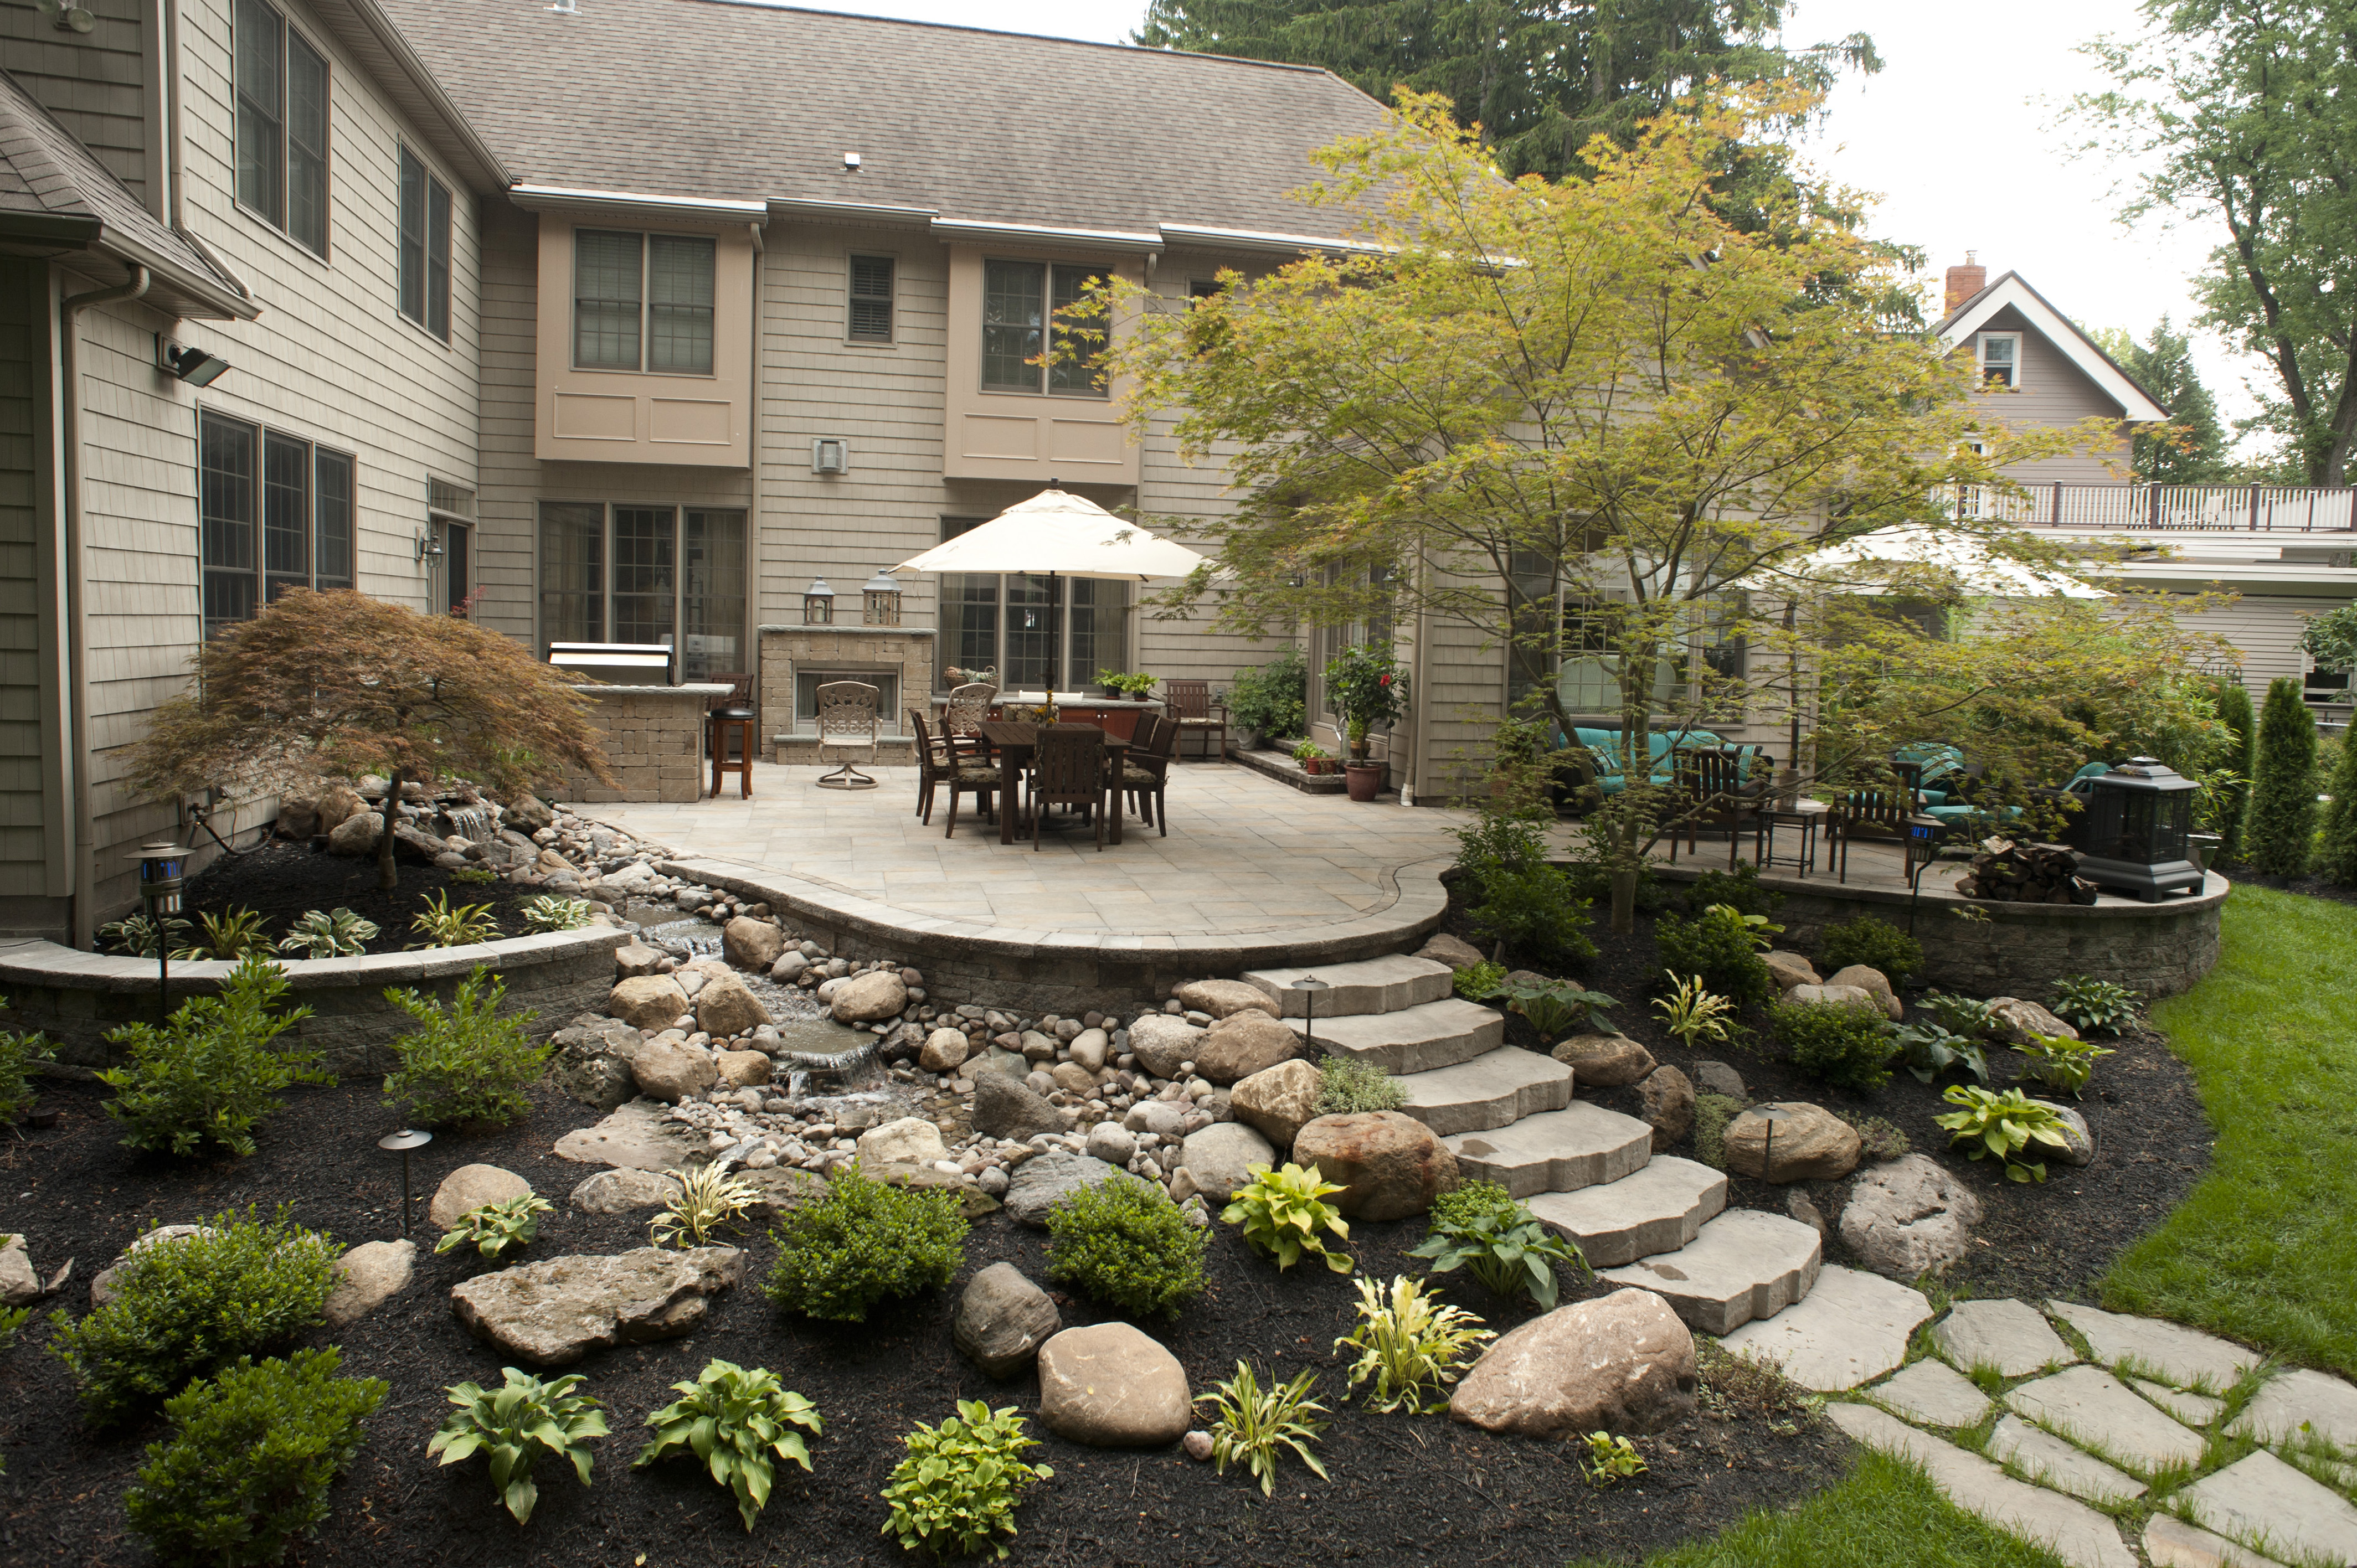 5112 W Ridge Rd Spencerport Ny 14559 Toggle Navigation Residential Landscape Design Planting Lawn Installation Patios And Walkways Water Features Retaining Walls Landscape Lighting Commercial Landscape Maintenance Snow Ice